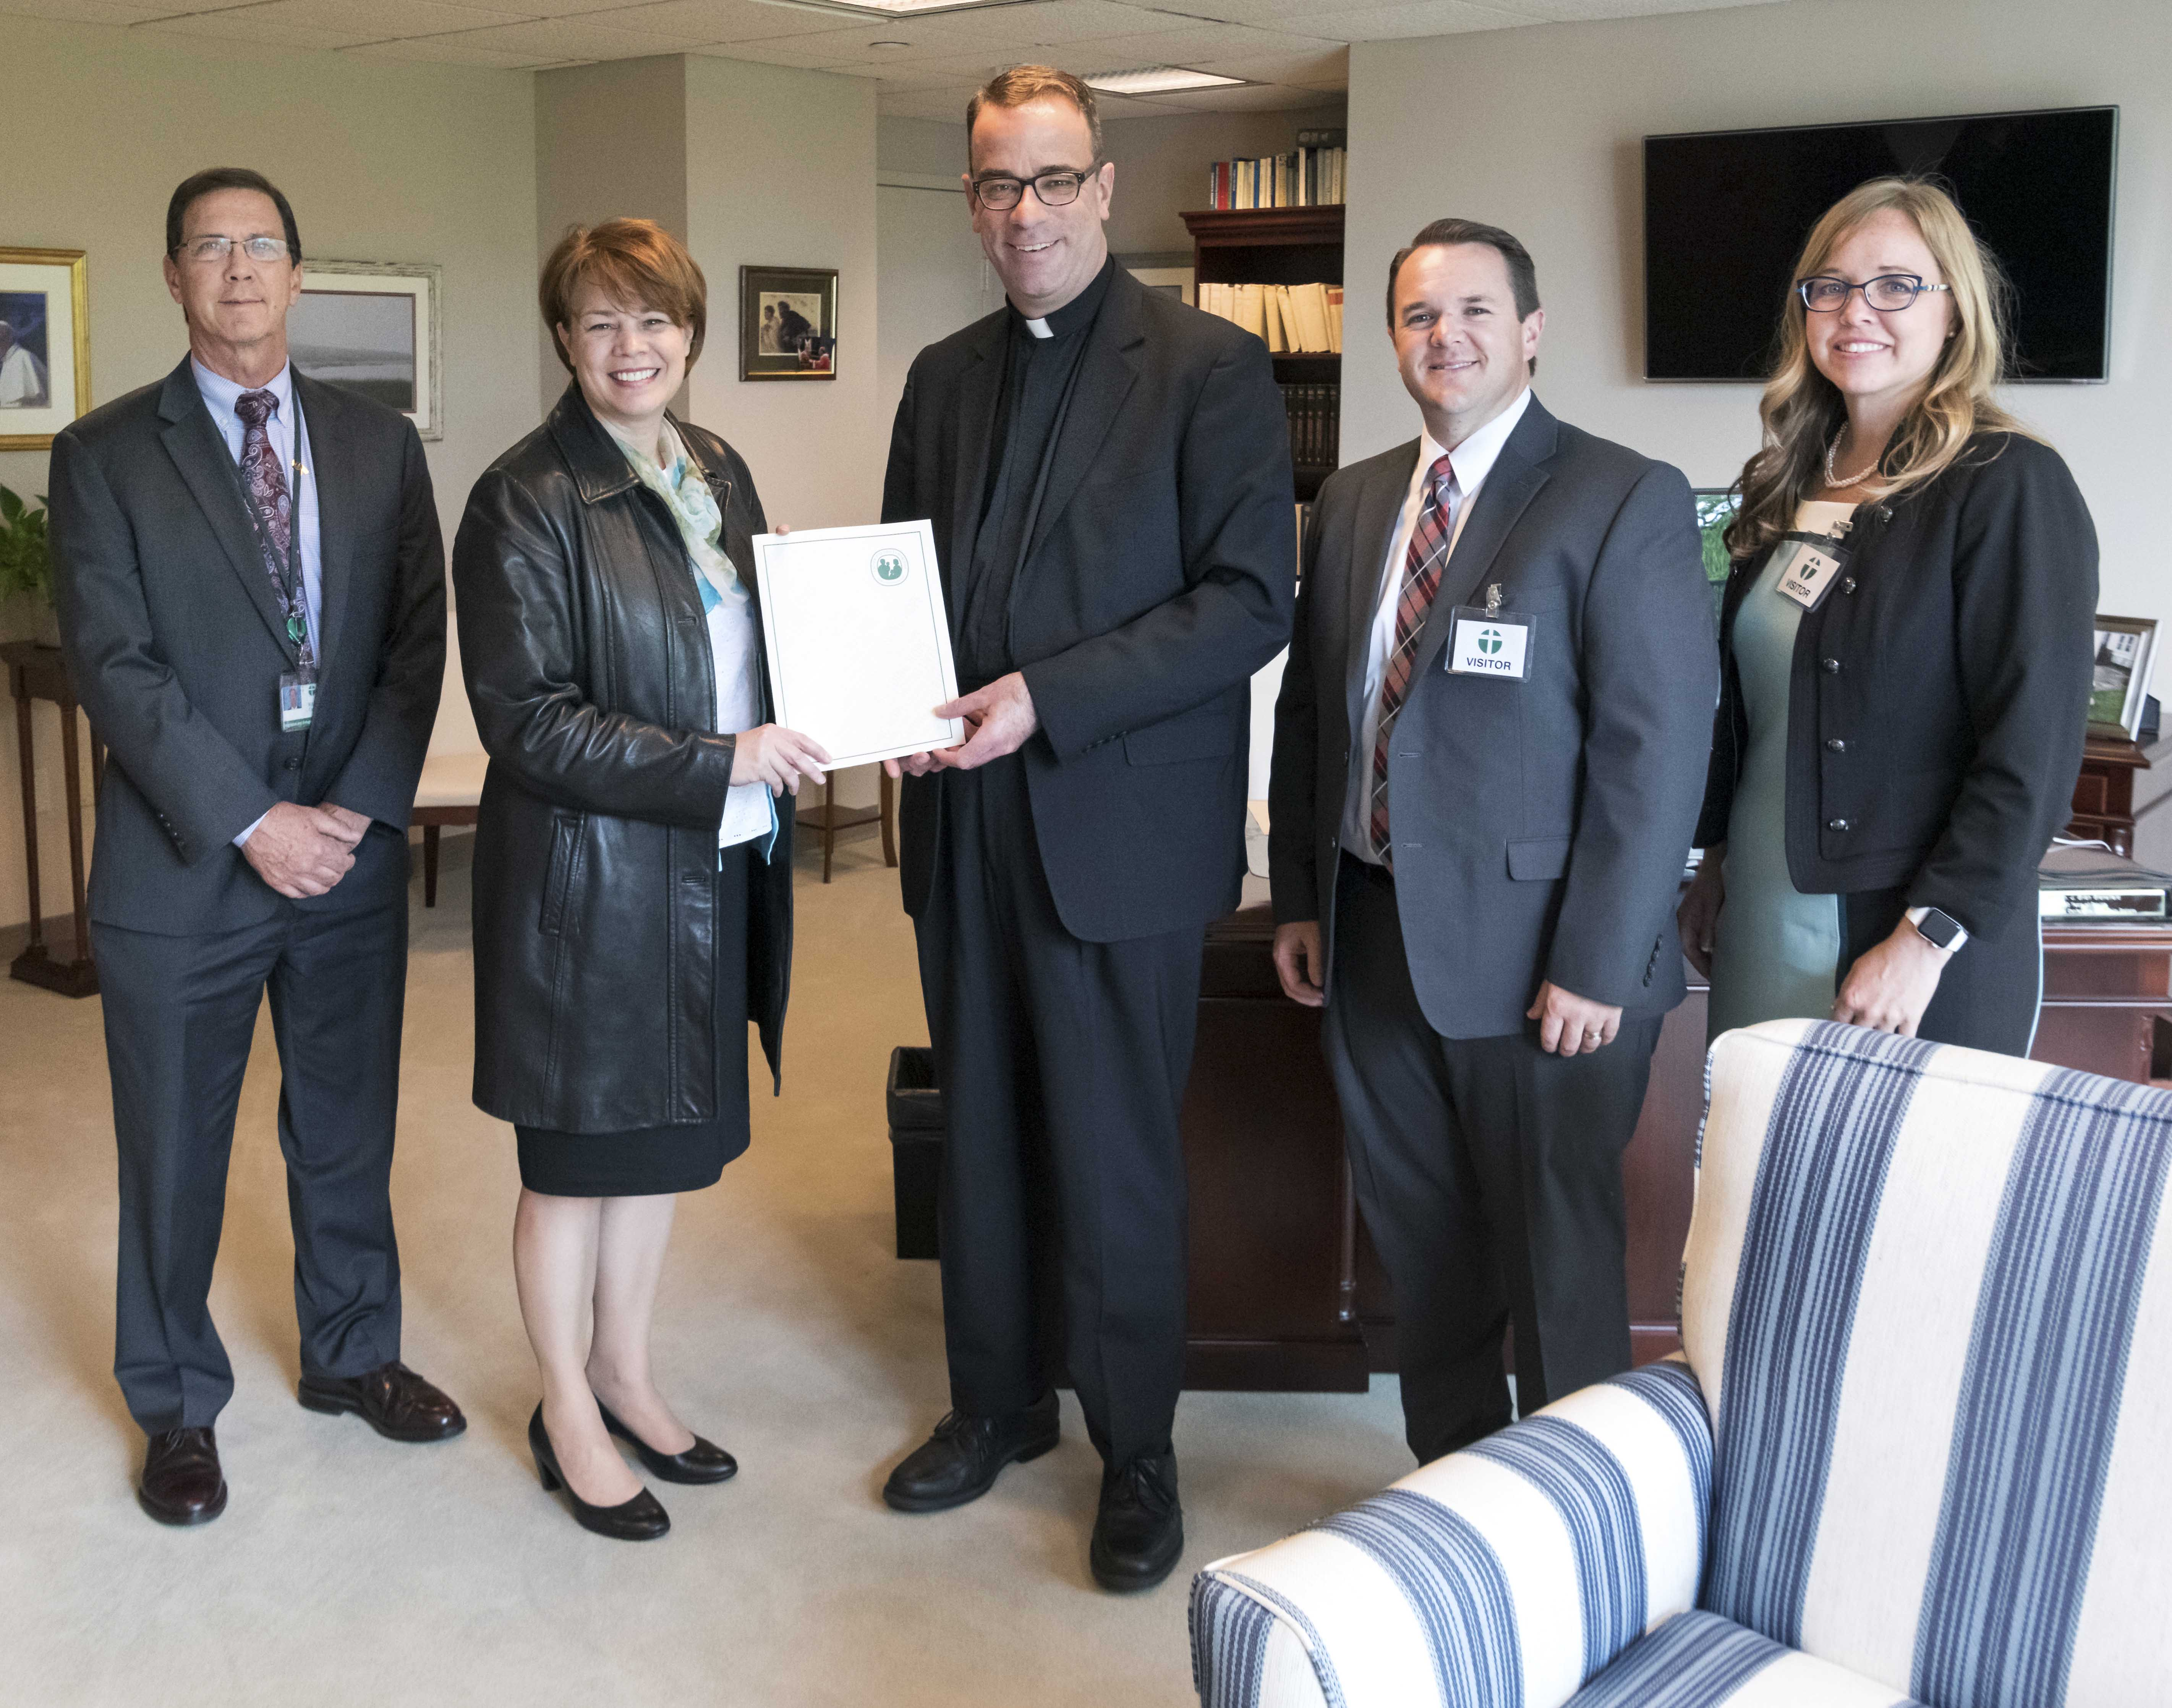 Sister Sharon Eubank, second from left, president of Latter-day Saint Charities, presents a grant from the Church to the Reverend Monsignor J. Brian Bransfield, center, general secretary of the United States Conference of Catholic Bishops (USCCB) May 14, 2019. Also present are William Canny, left, USCCB executive director; Shawn Johnson, second from right, director of the Church's Humanitarian Services; and Elissa McConkie, right, manager of Humanitarian Services Major Initiatives.